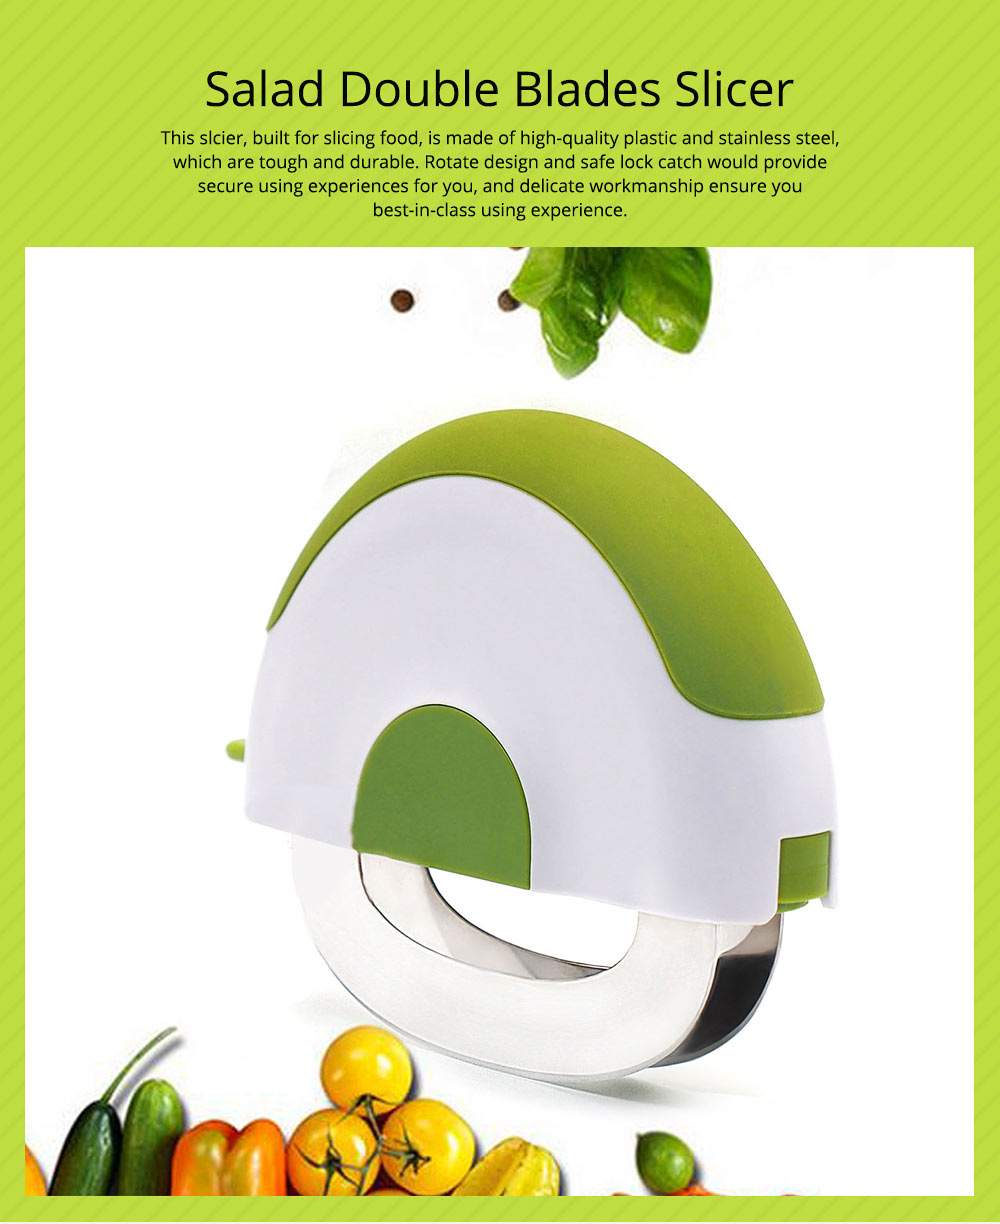 Creative Stainless Steel Vegetable Fruit Salad Double Blades Slicer, Safe Rotate Quick Ktichen Cutter Chopper with Lock 0